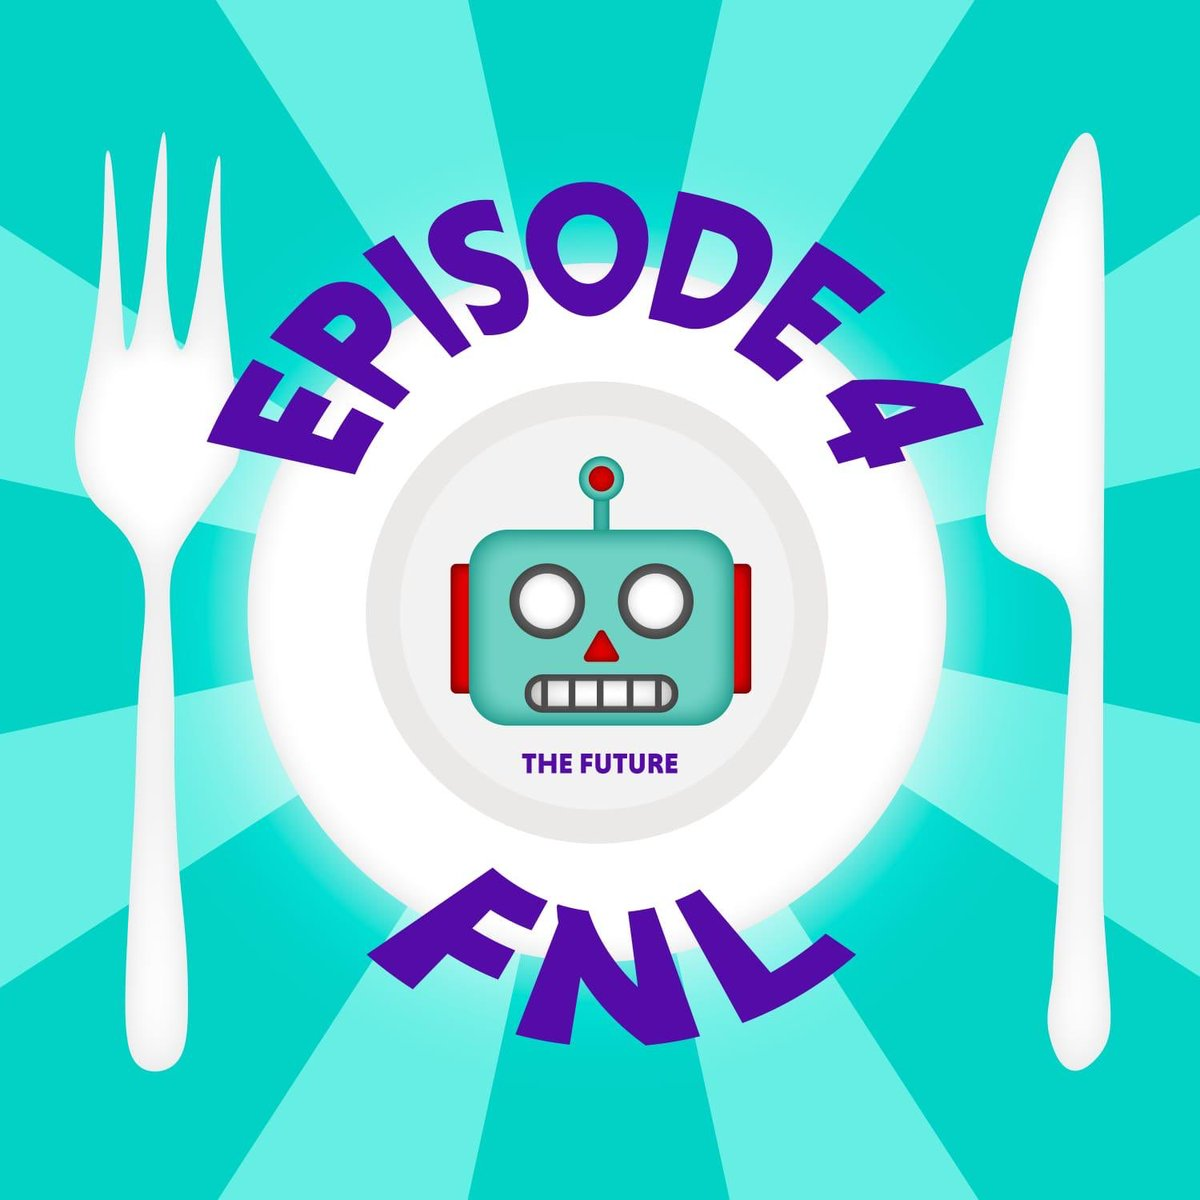 EPISODE 4 OUT NOW on Spotify and Apple 'Friday Night Lunch'  Theme: The Future  #podcasts #podcast #podcasting #podcaster #podcastlife #podcastersofinstagram #spotify #podcasters #podcastshow #podcastinglife #podcastaddict #radio #podcastlove #itunes #comedy #applepodcastspic.twitter.com/p83OfNC8TE